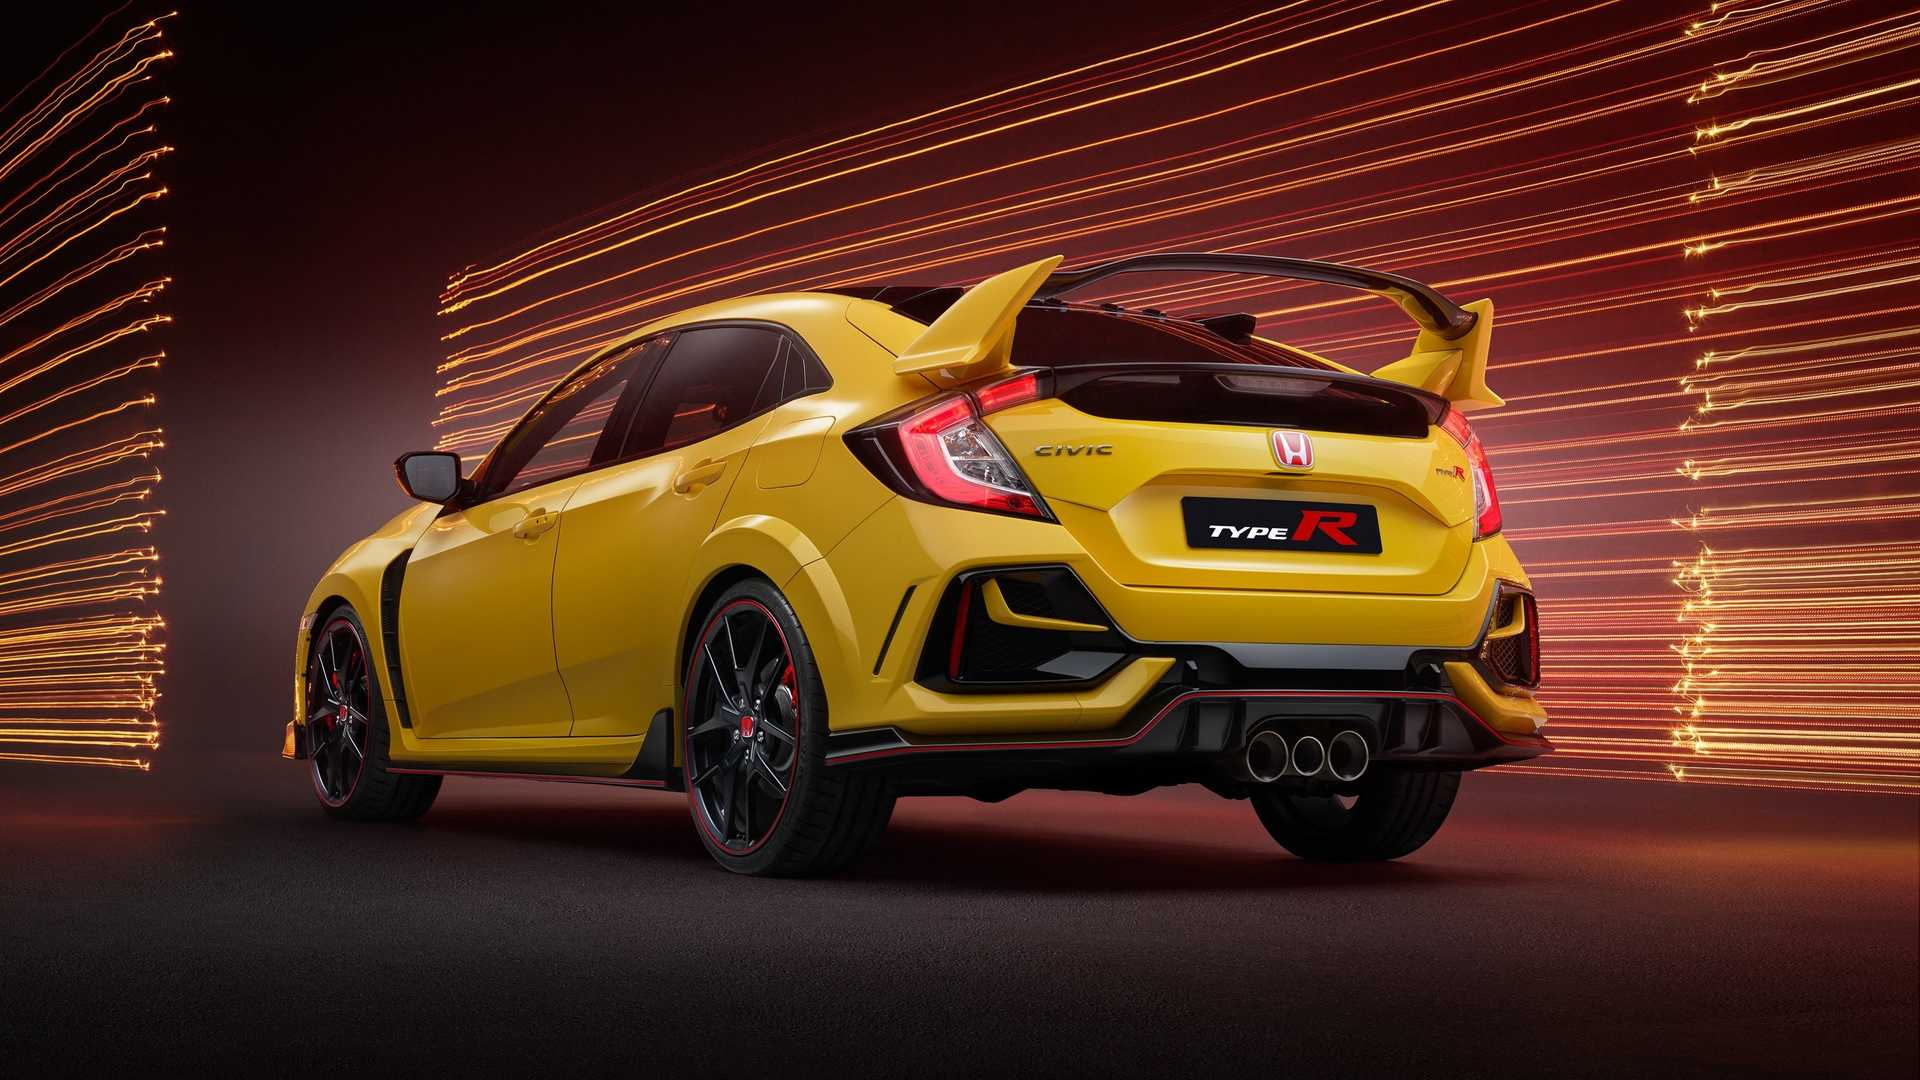 [Image: honda-civic-type-r-limited-edition.jpg]